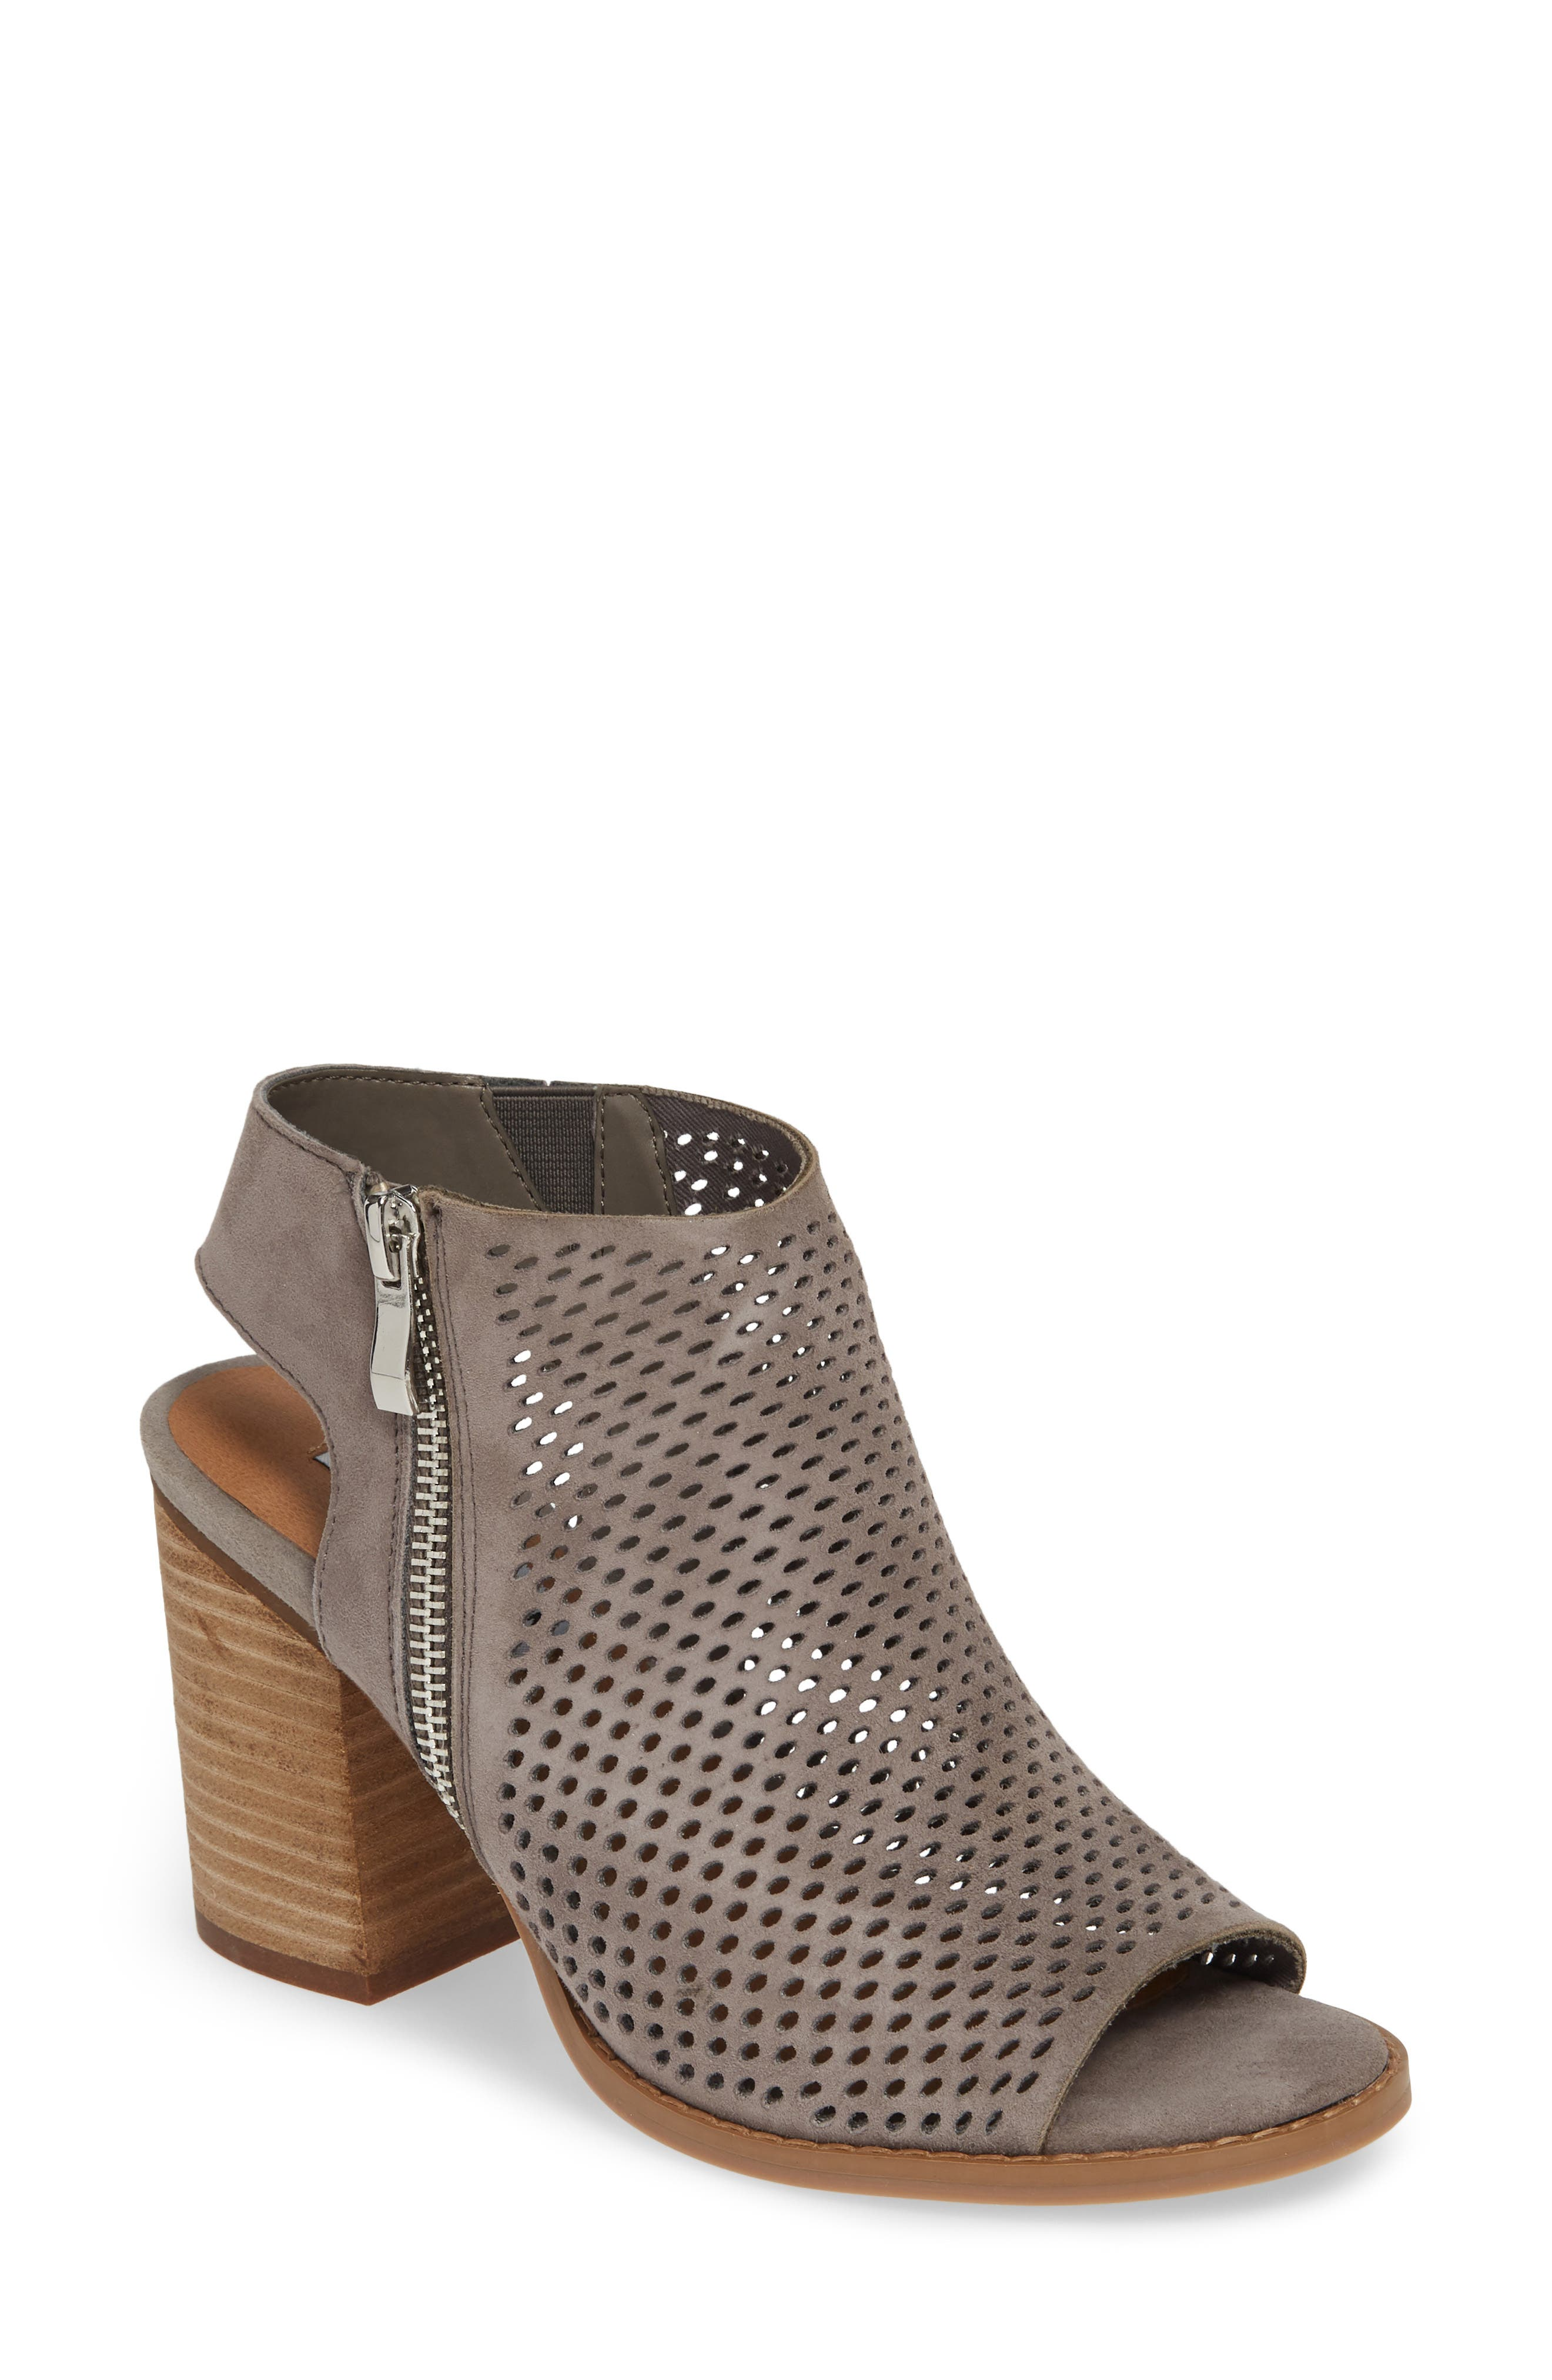 dbc74e44f16 Steve Madden Abigail Perforated Bootie- Grey